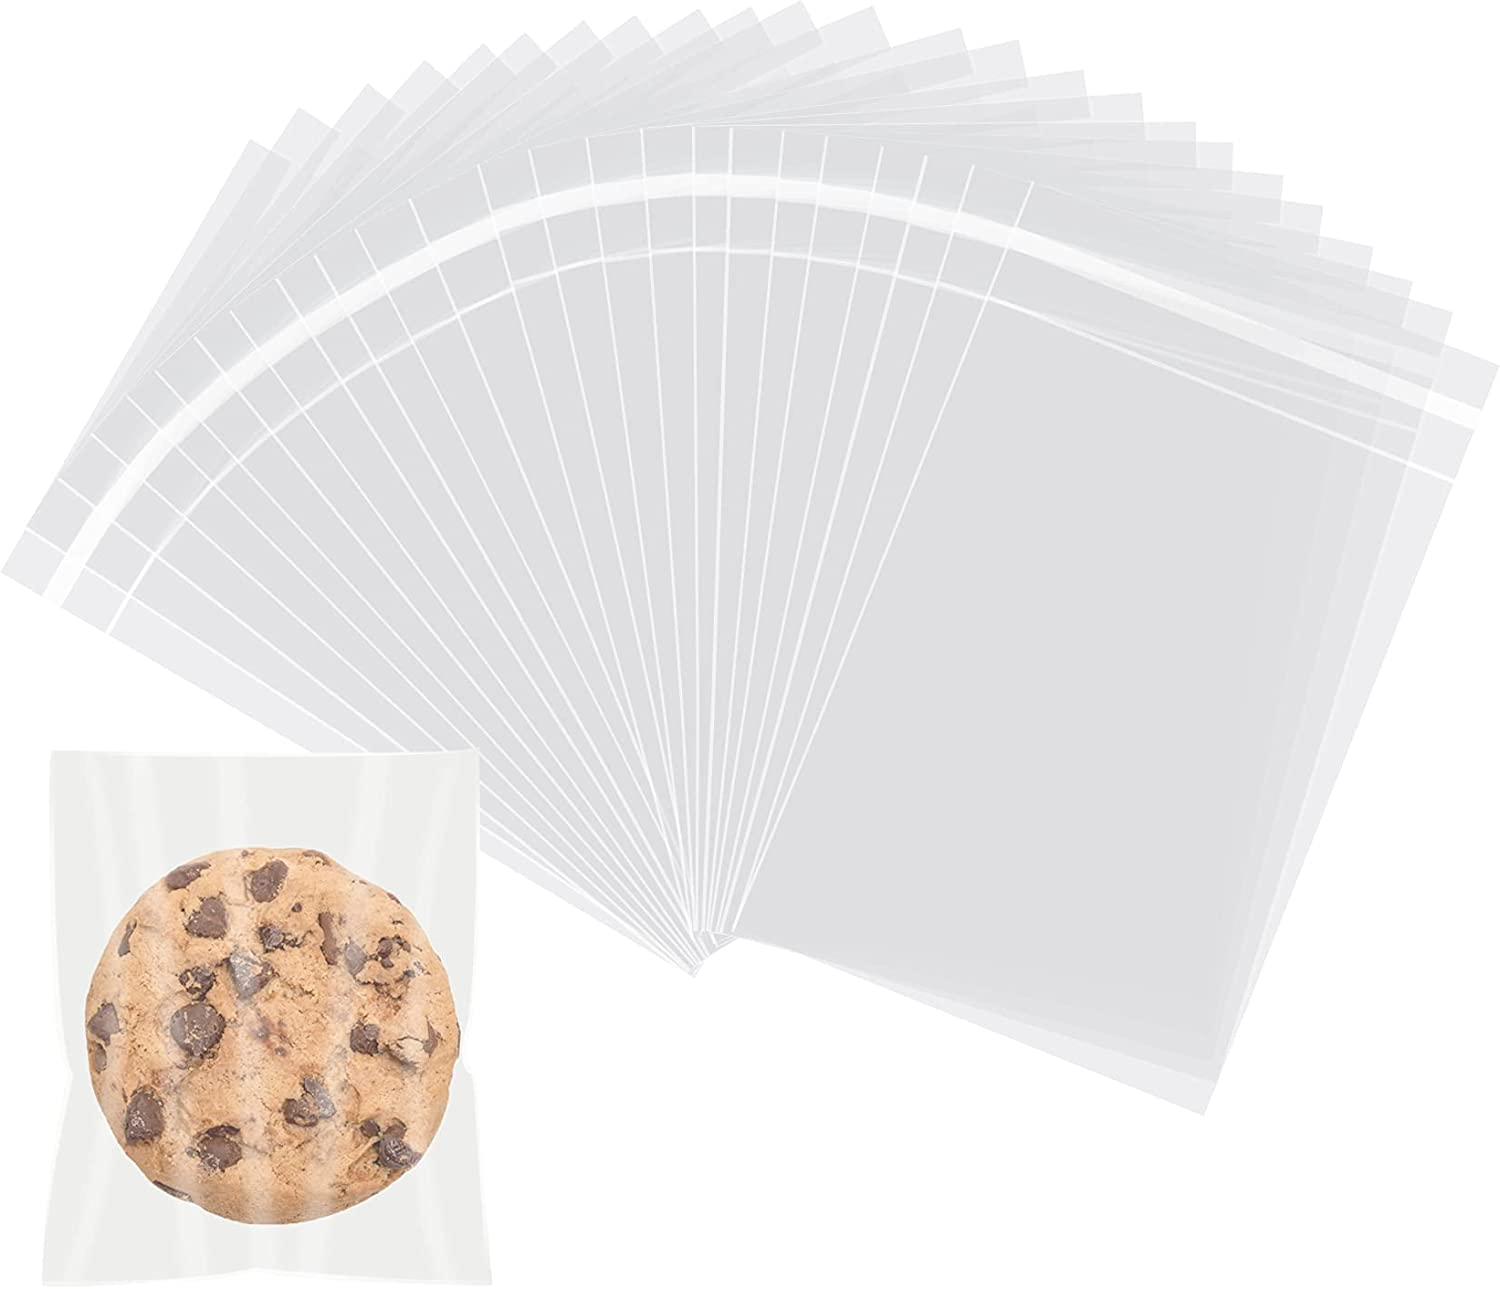 Self Sealing Cellophane Bags,3x5 Inch Cello Bags, Resealable Cellophane Plastic Bags Self Adhesive for Packaging Gifts, Products,100 Pcs